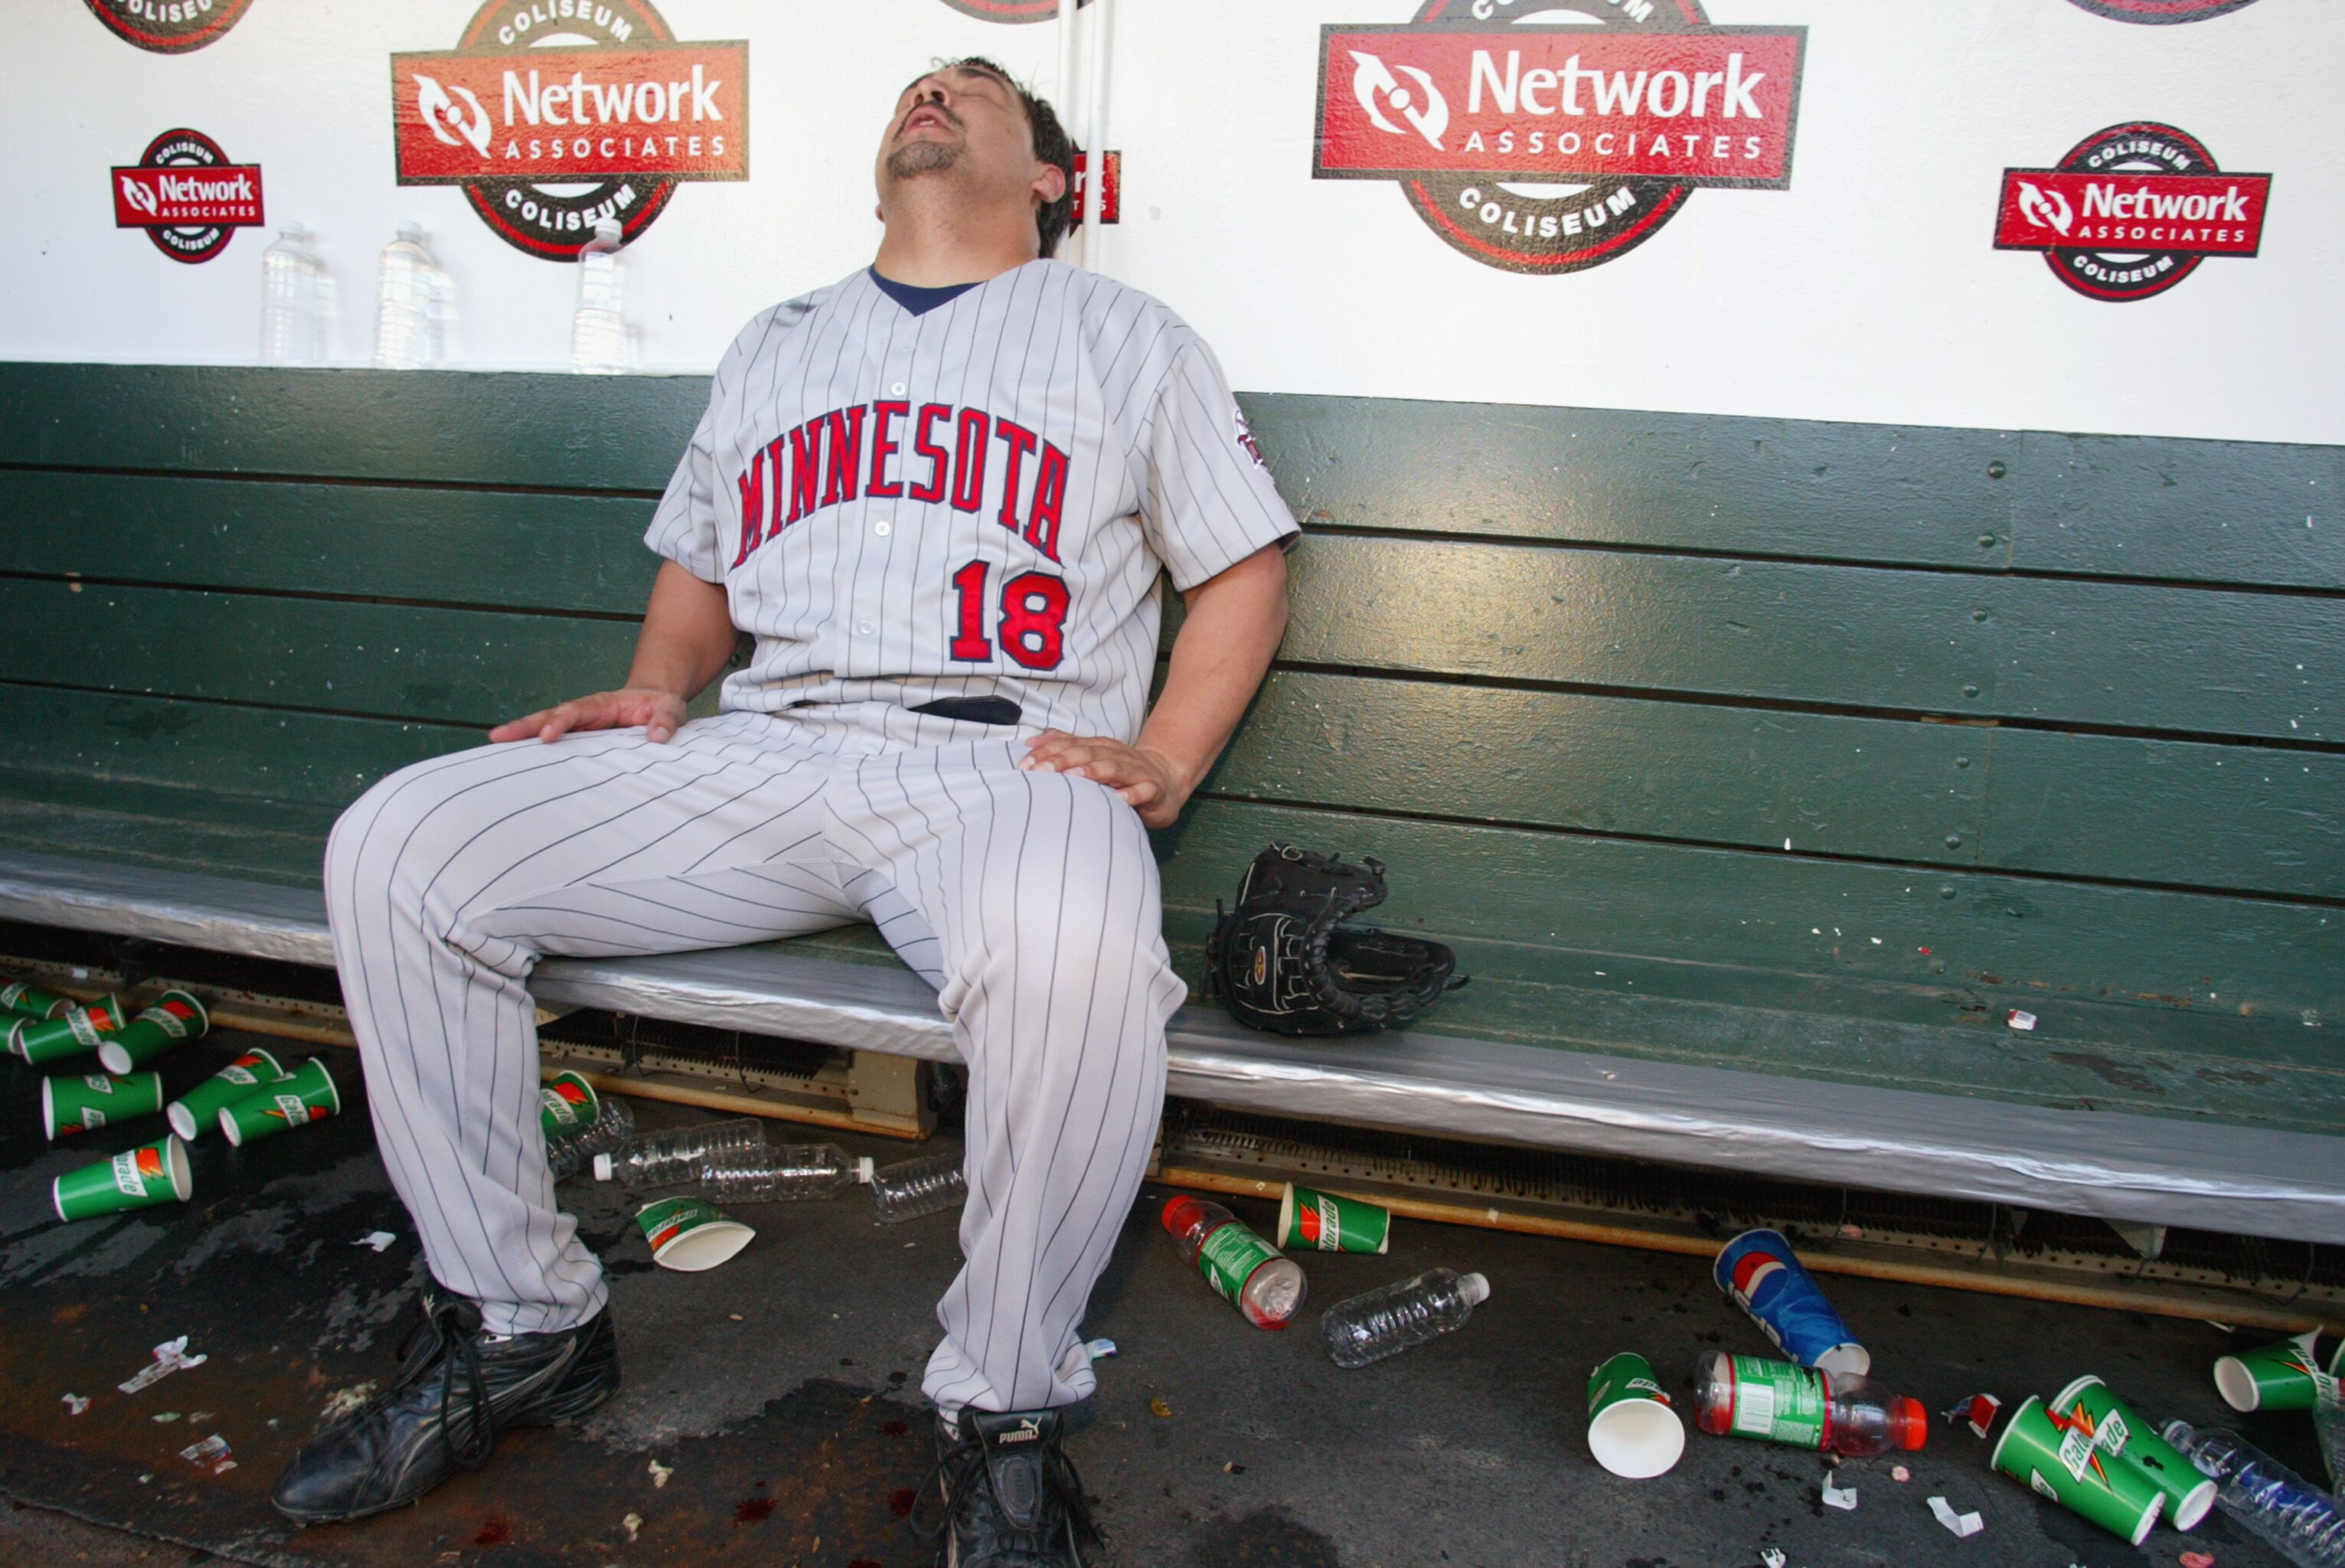 72499984-eddie-guardado-sits-in-the-dugout.jpg